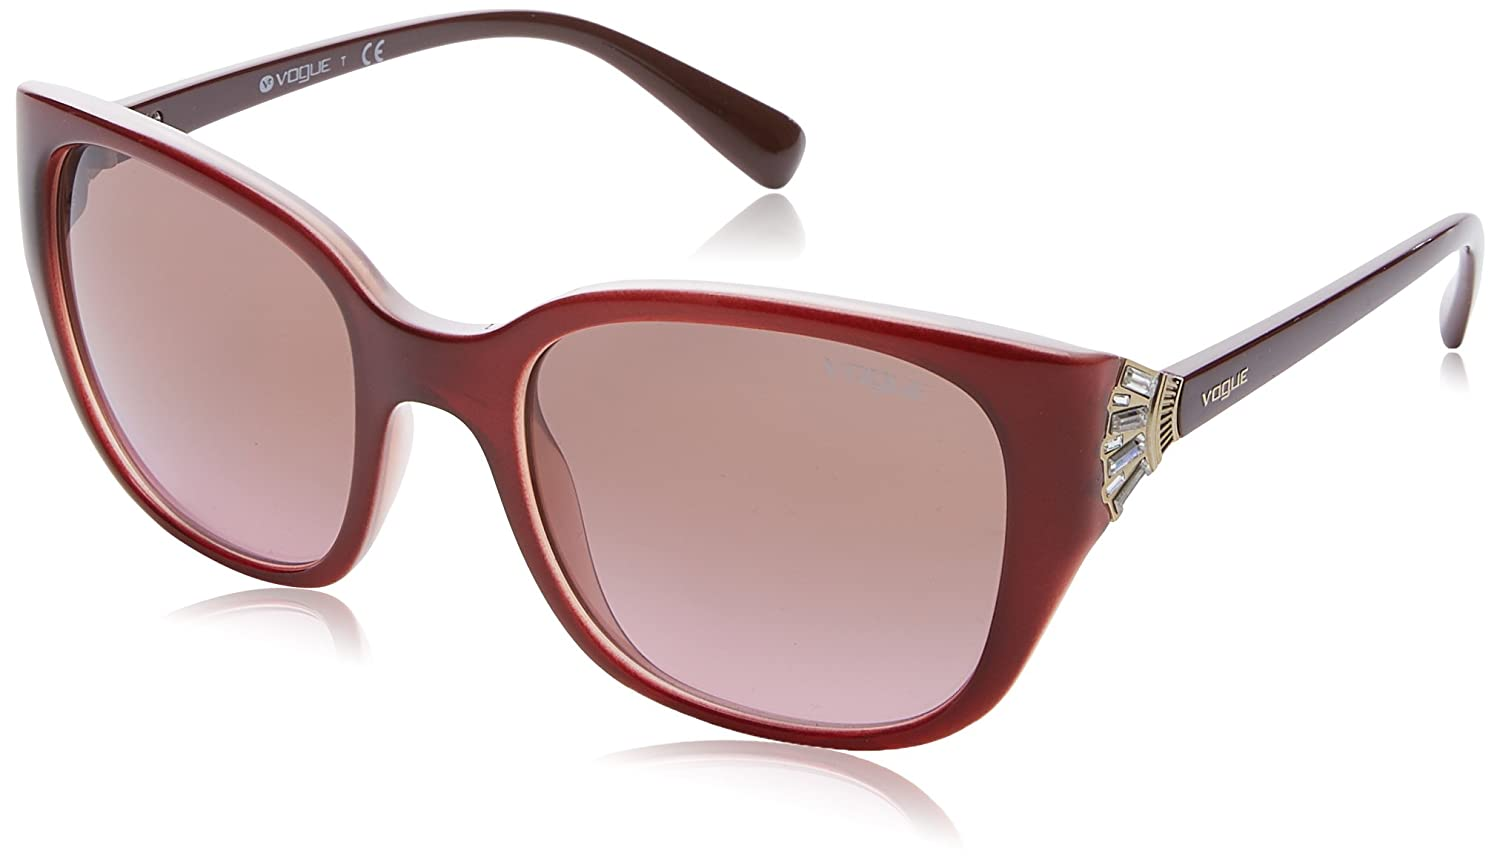 Vogue 0Vo5092Sb Gafas de sol, Top Dark Havana/Brown, 53 para Mujer